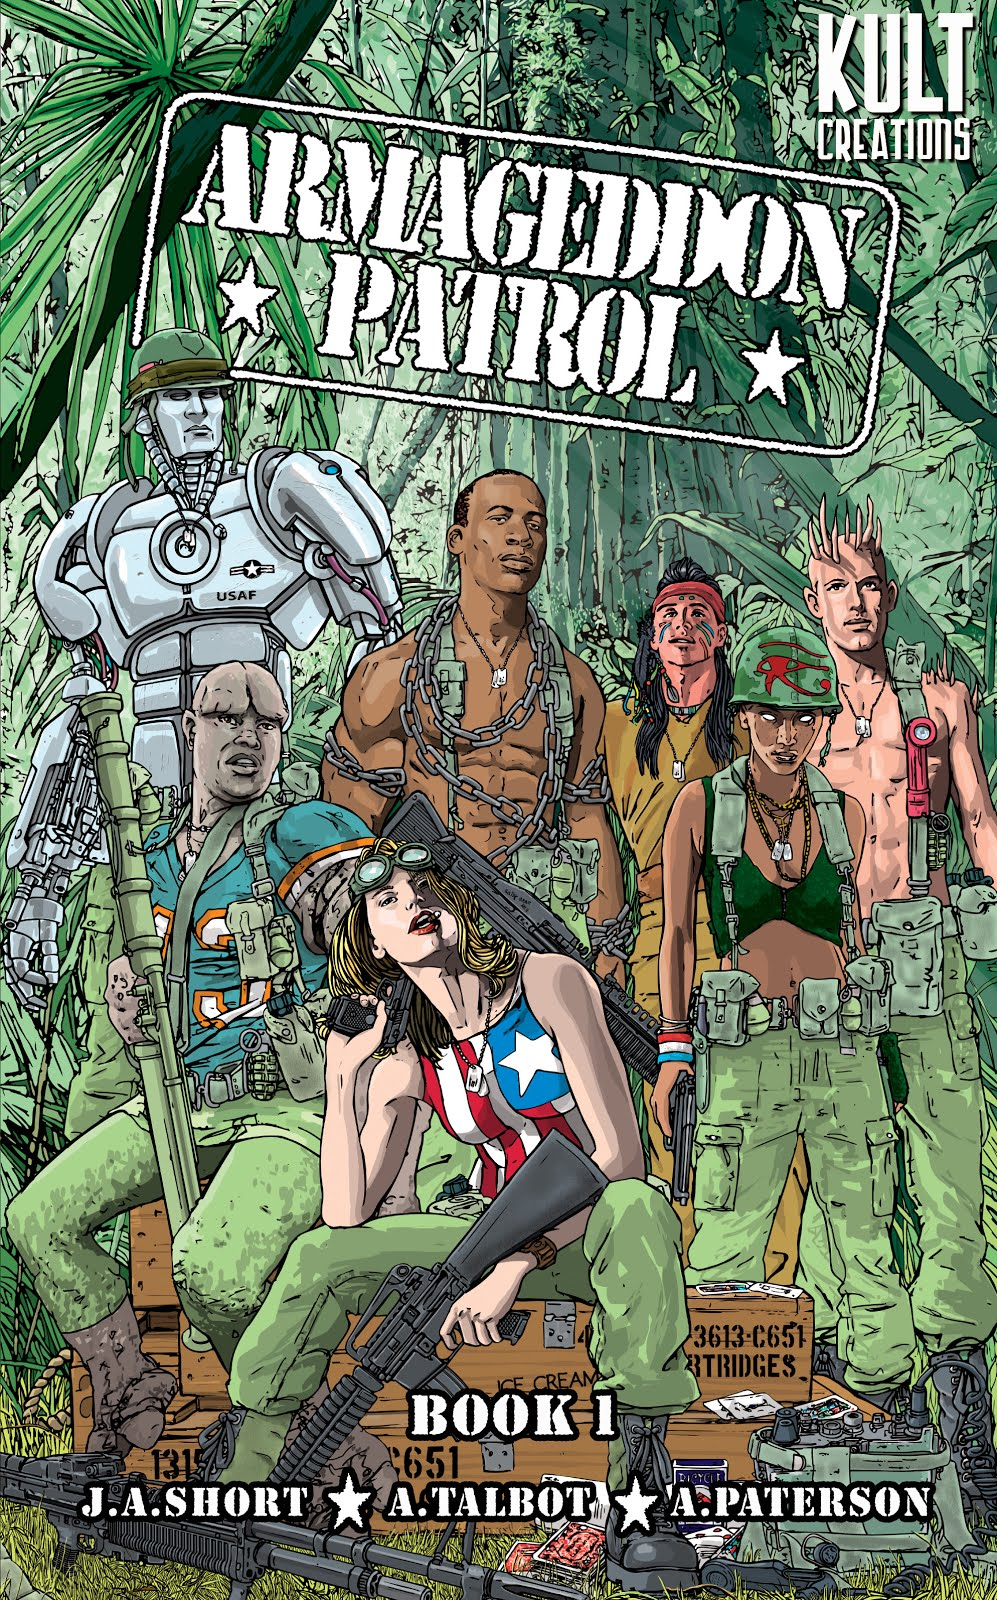 Buy ARMAGEDDON PATROL BOOK 1 - Digital @£9.99 BELOW!